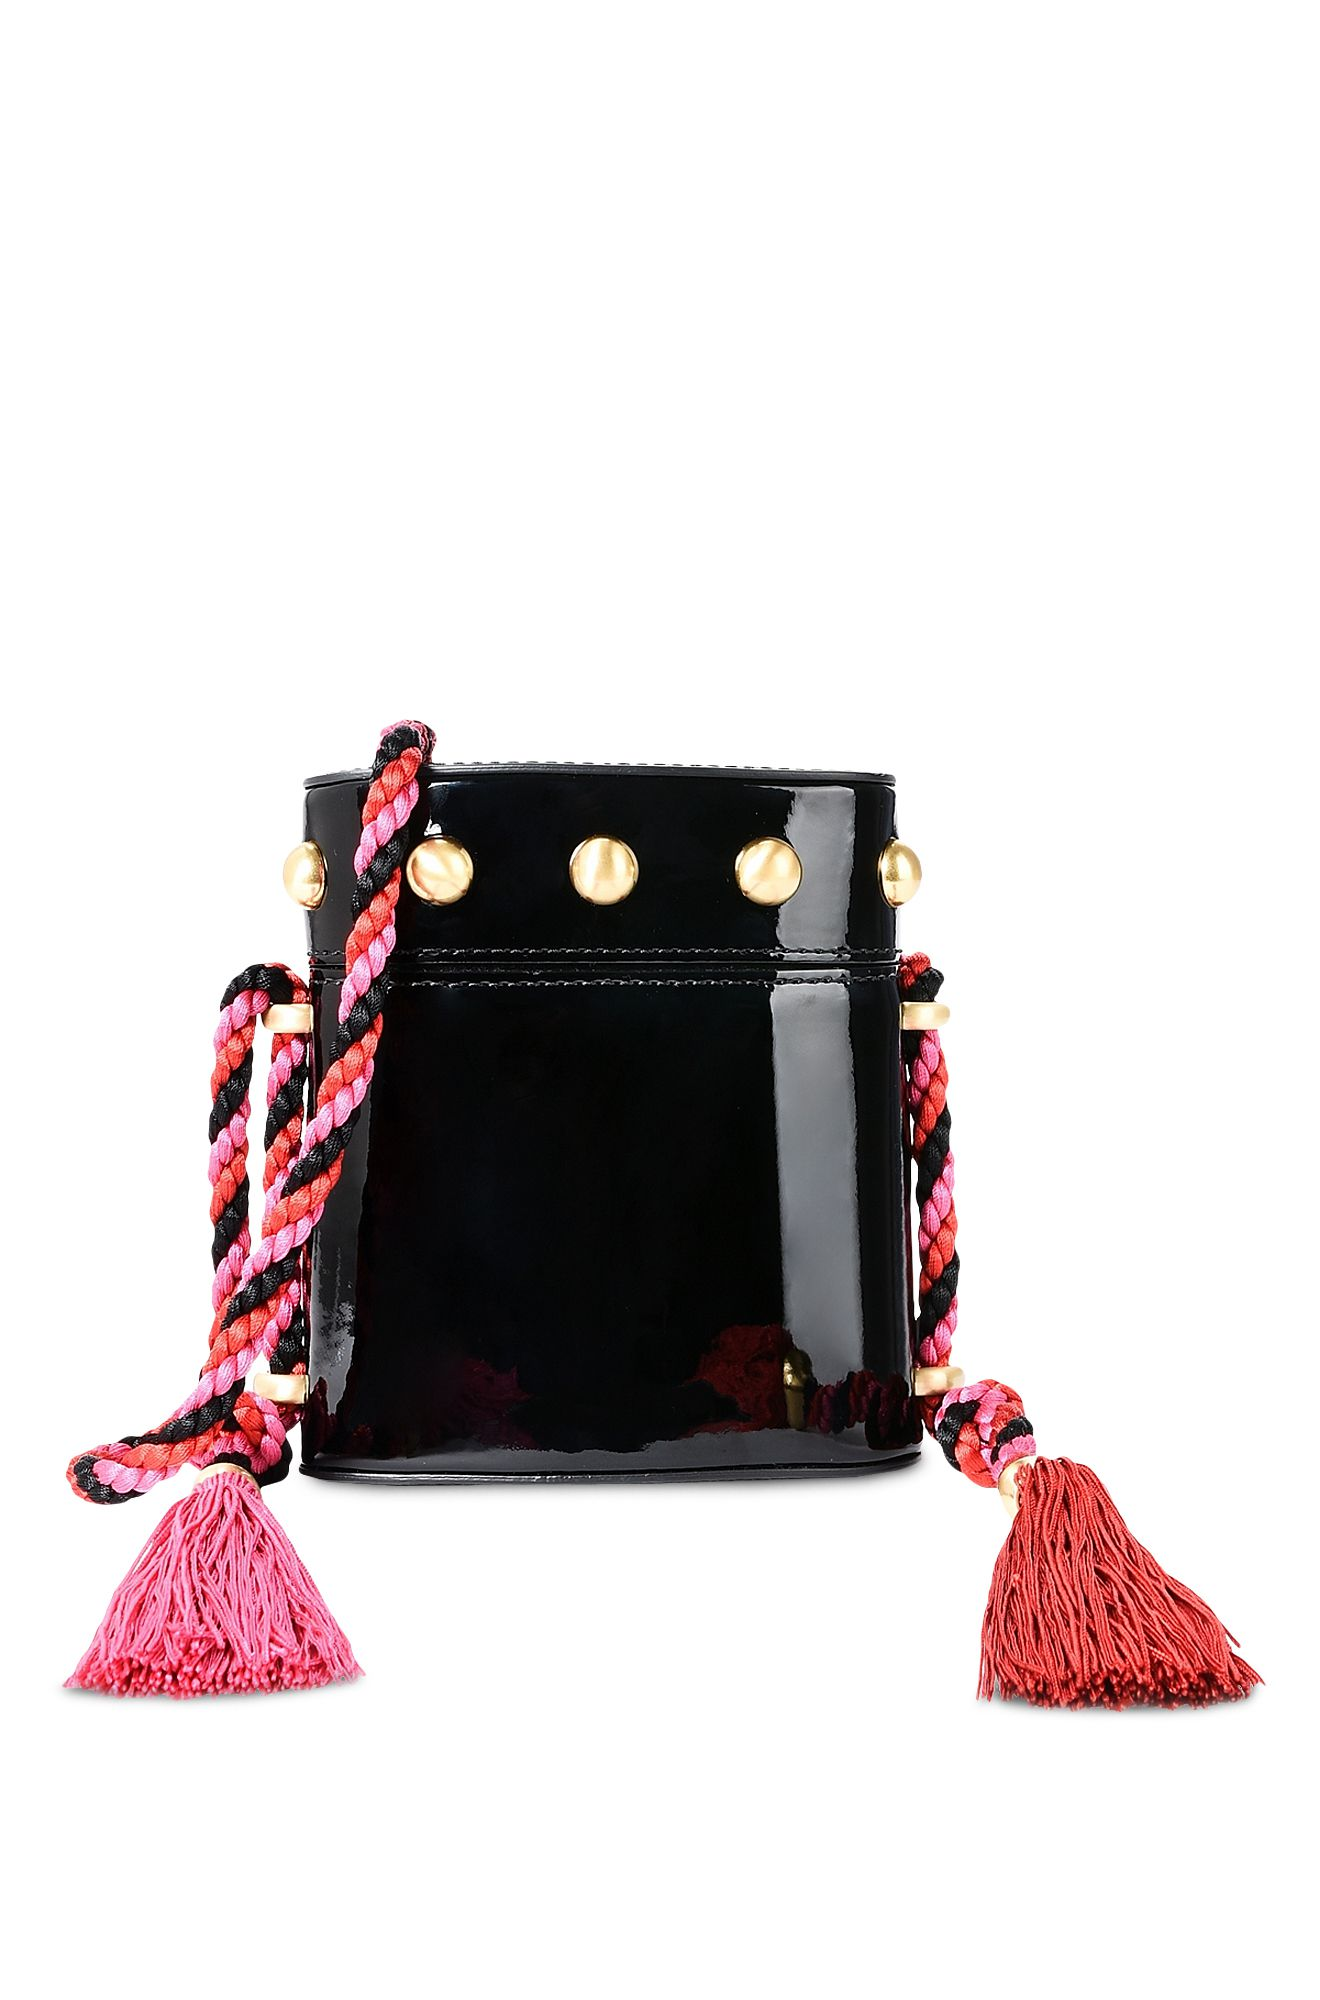 Mini bag vernice nera